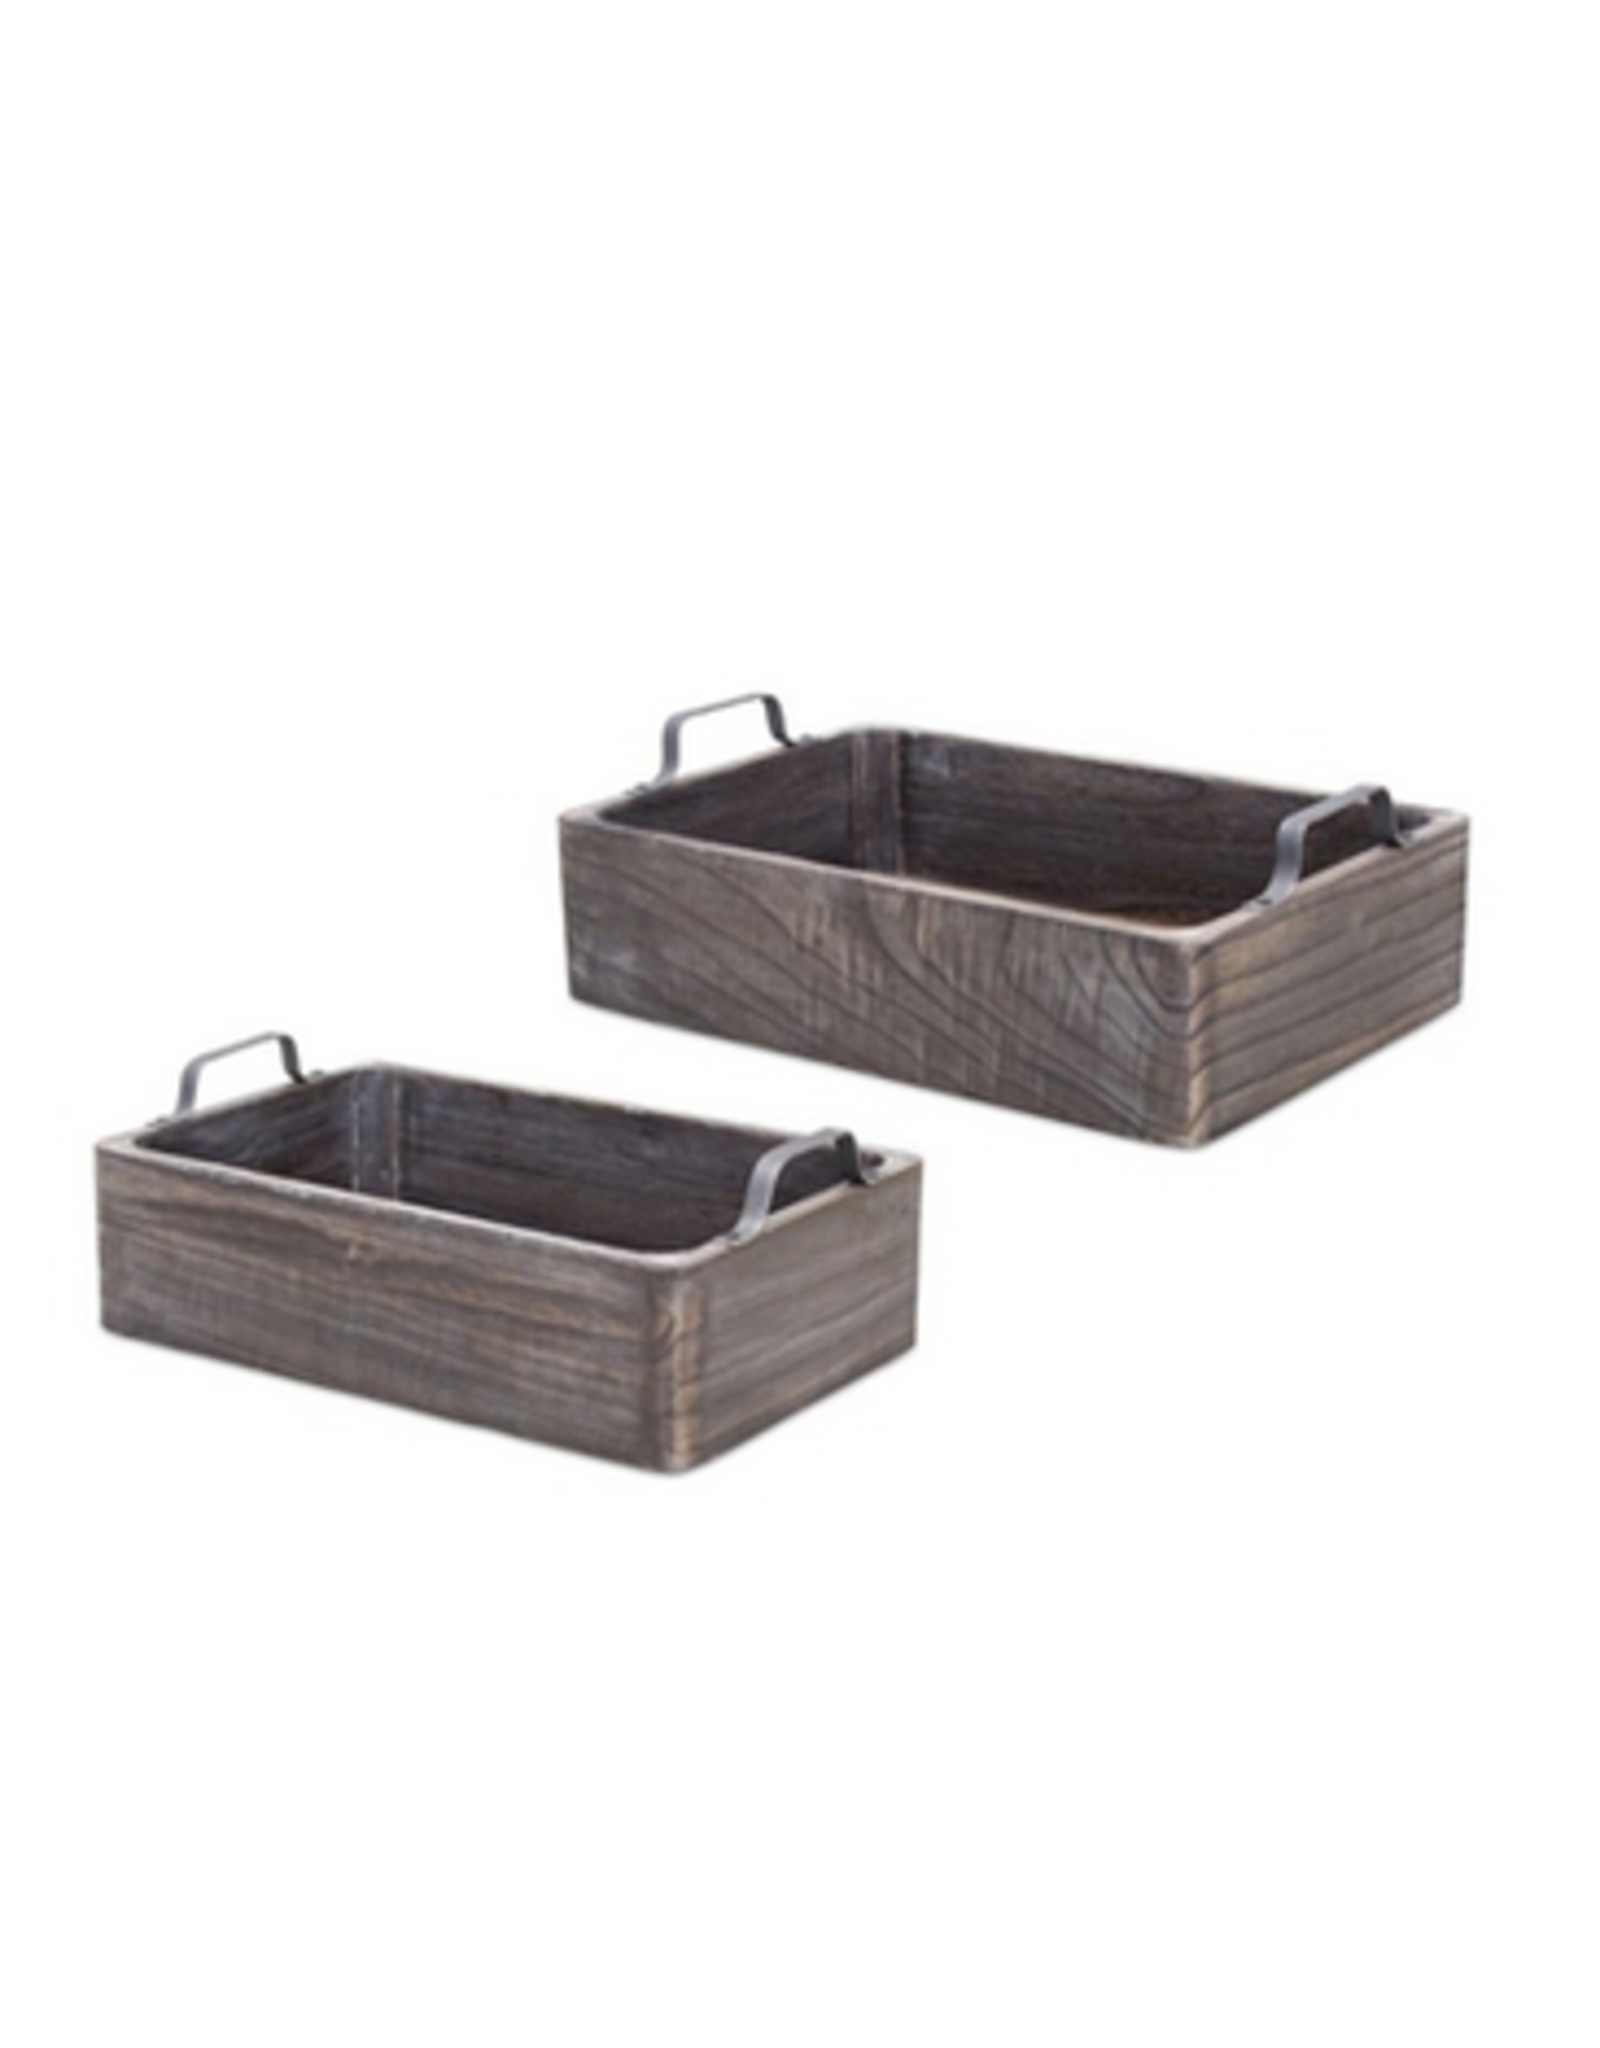 Melrose Charcoal Wooden Tray with Handles Small